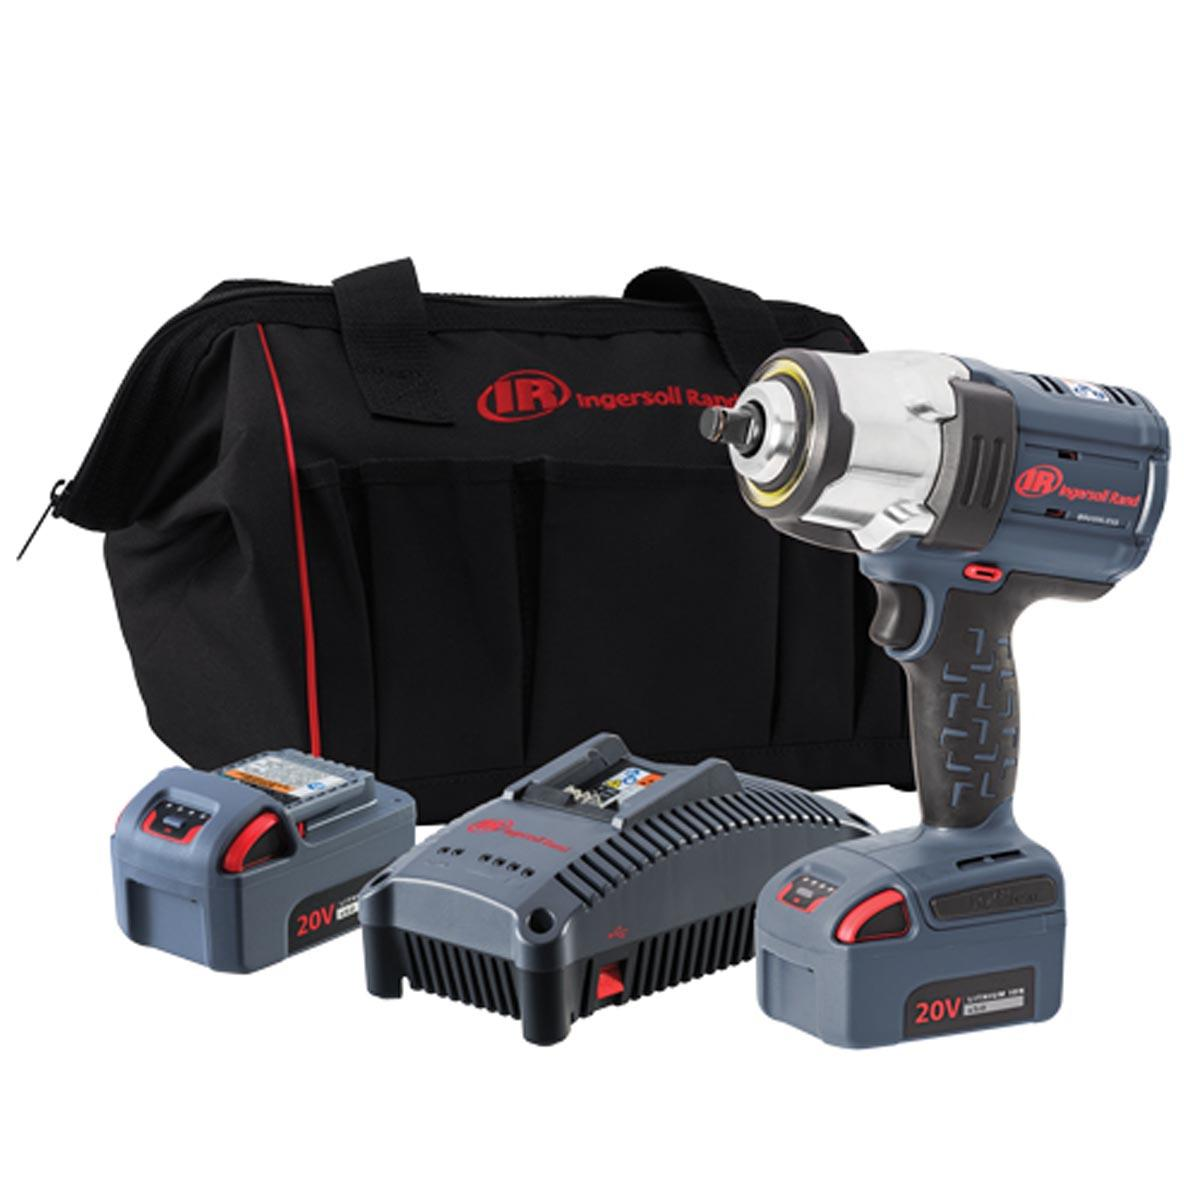 1/2-In Drive 20-Volt Cordless Impact Wrench Kit with 2 Batteries - 1500 Ft-Lbs Max Torque